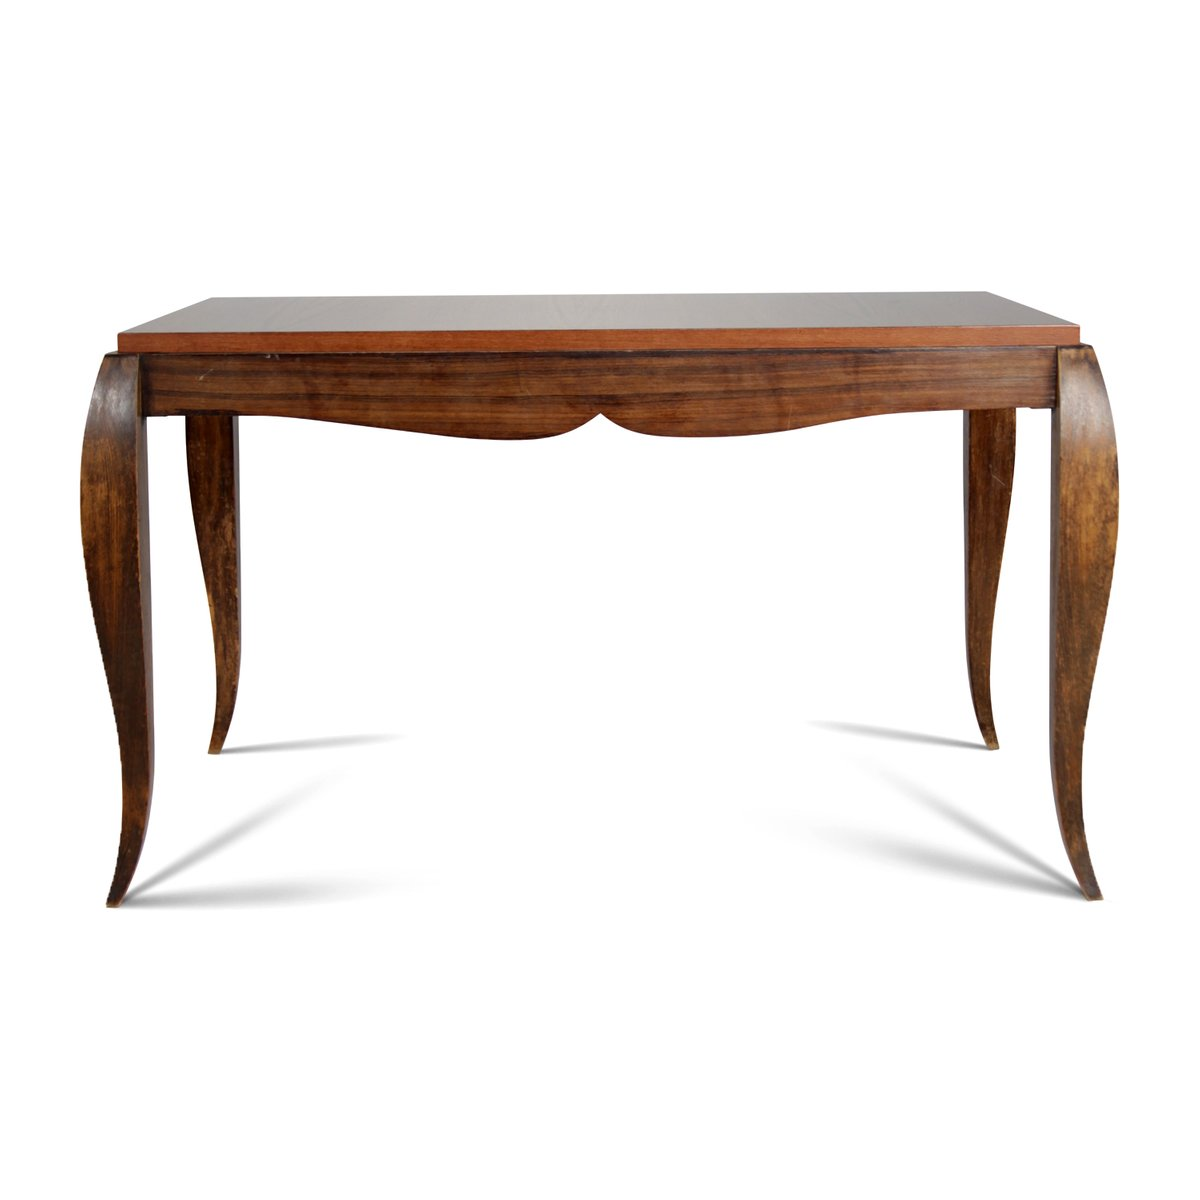 French Dining Table 1940s Bei Pamono Kaufen